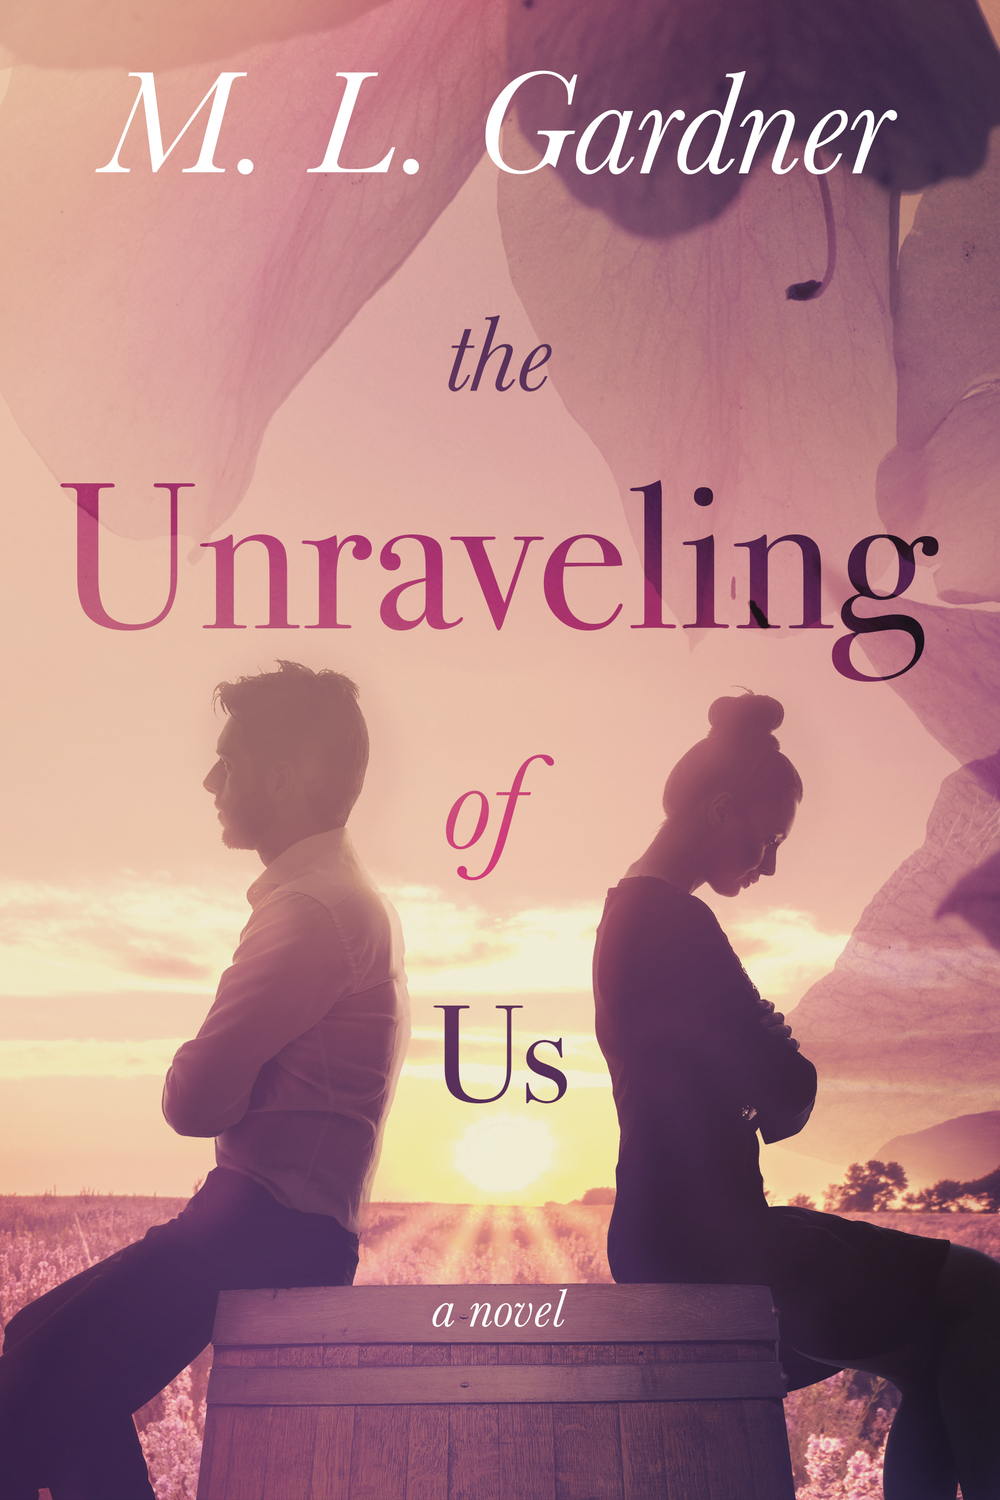 The Unraveling of Us by M. L. Gardner